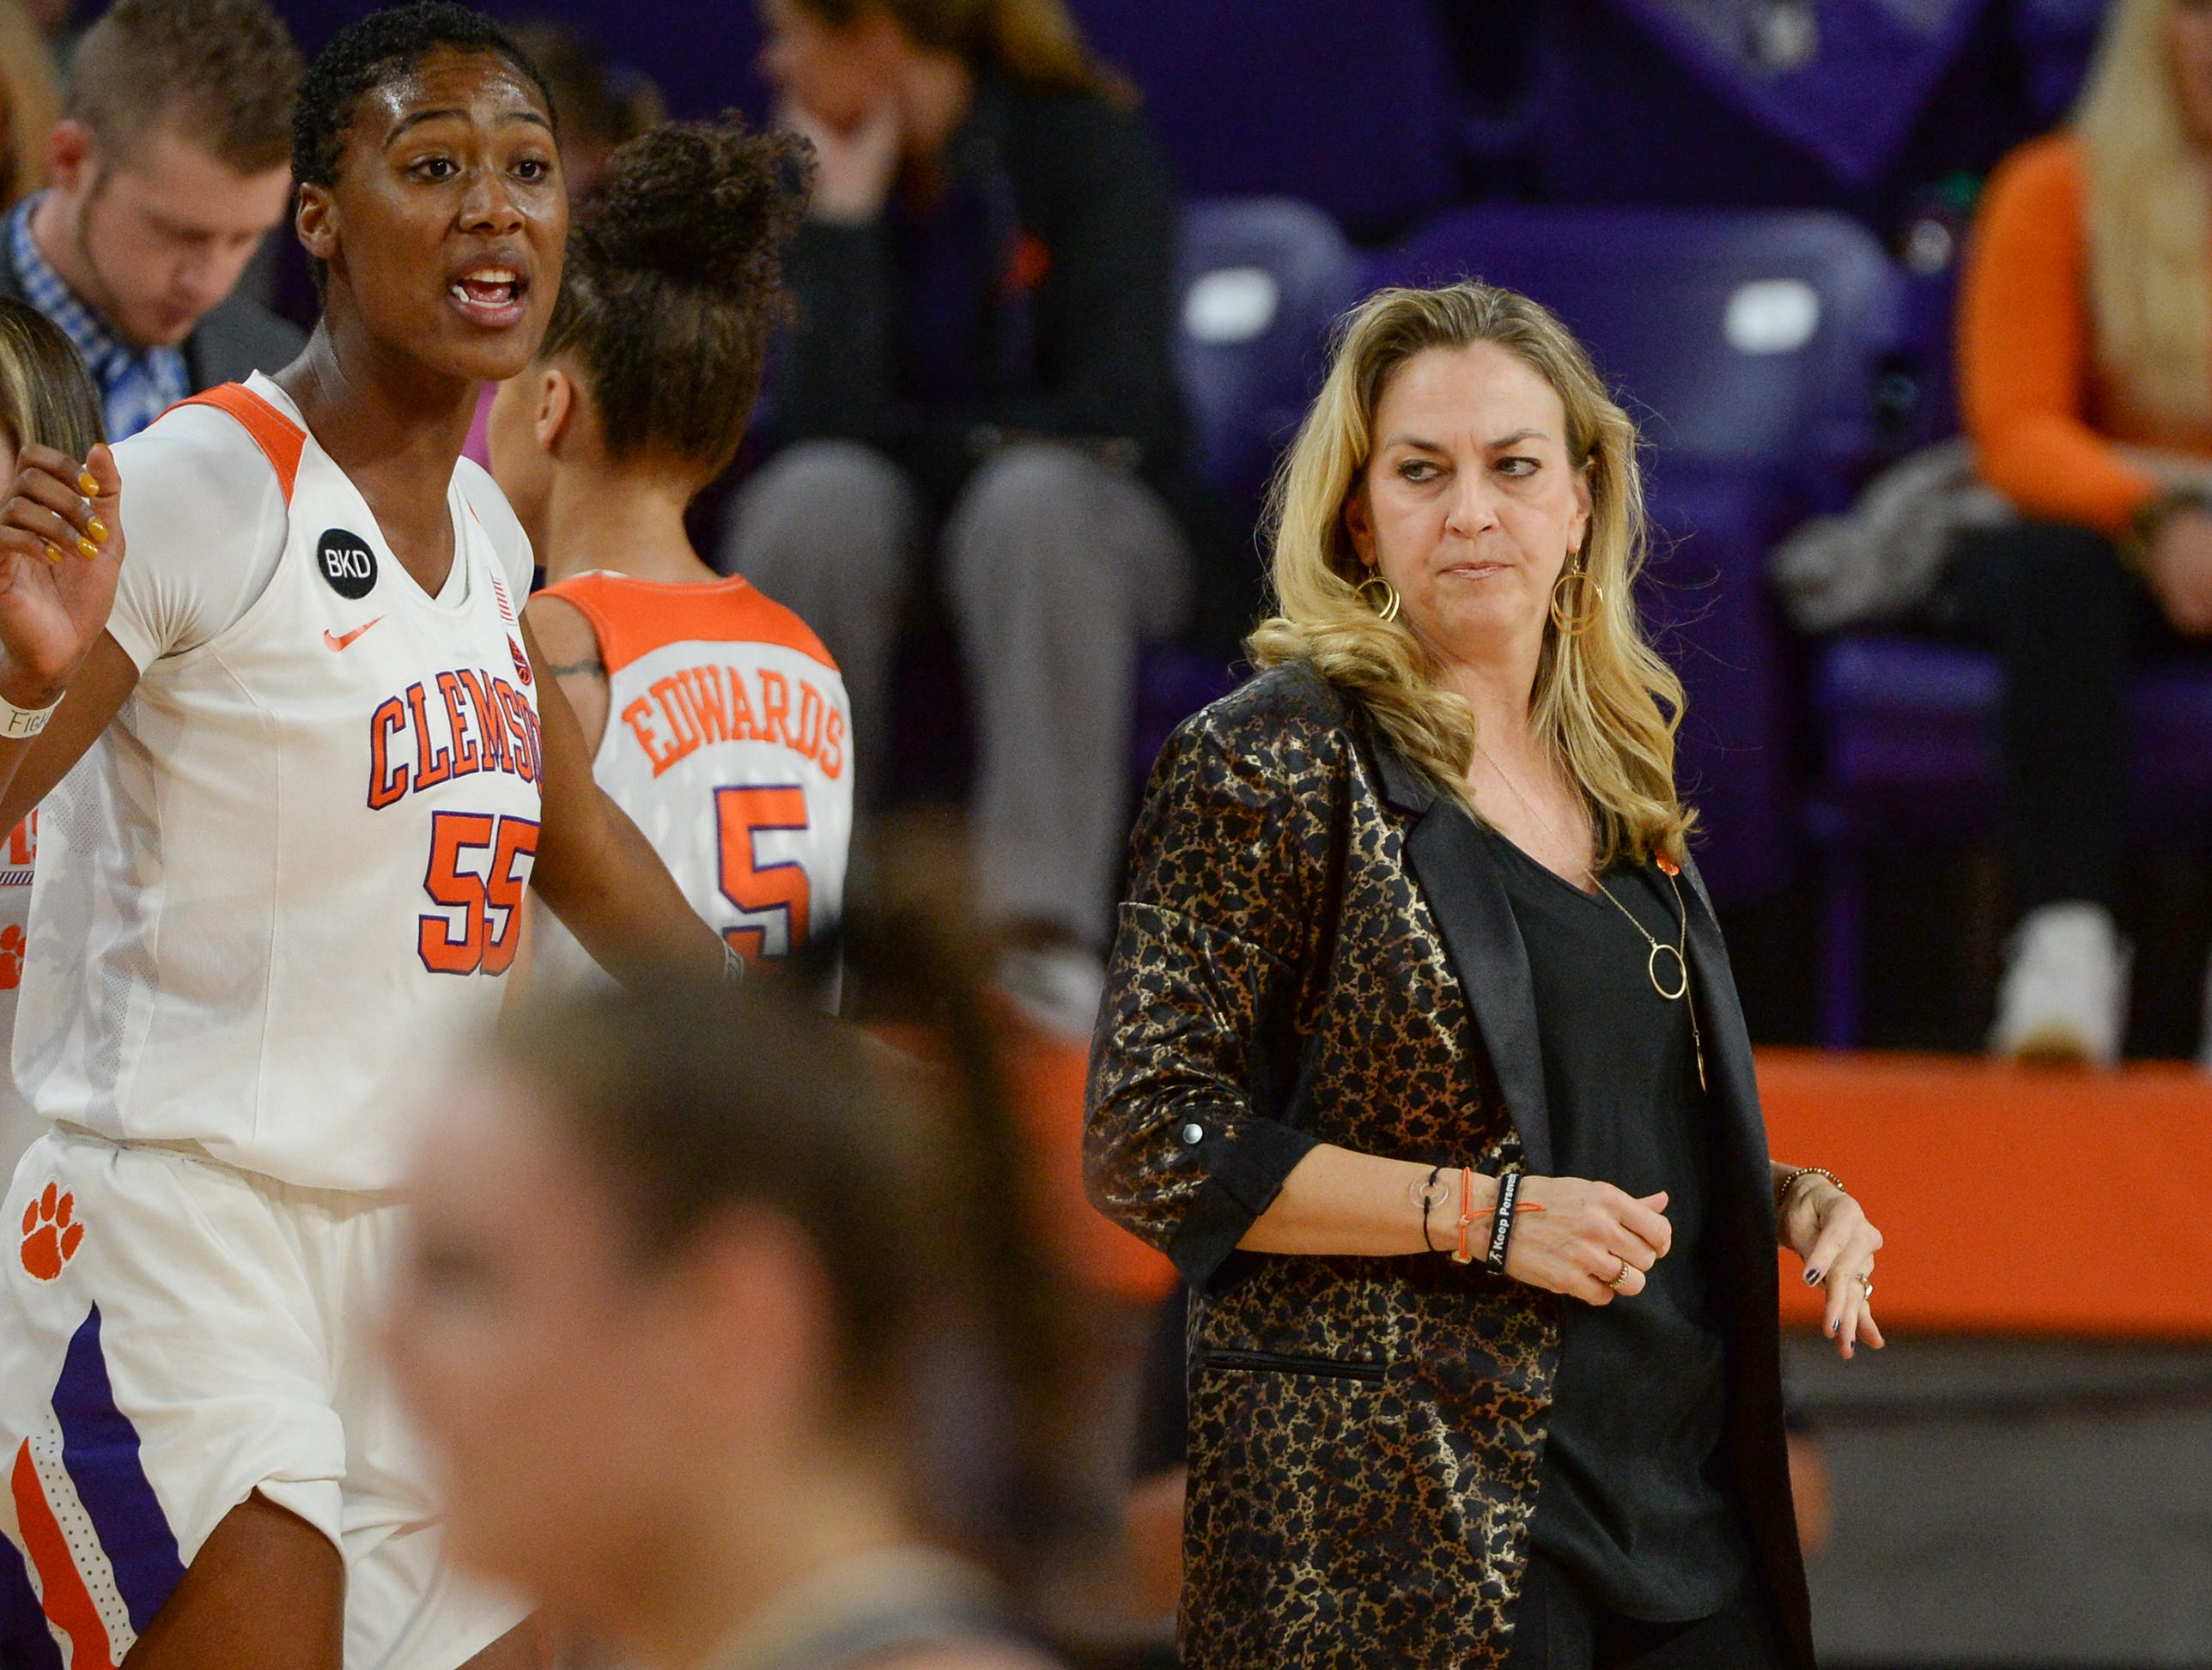 Clemson Head Coach Amanda Butler during the second quarter of the game with Georgia Tech at Littlejohn Coliseum in Clemson Thursday, January 17, 2019.